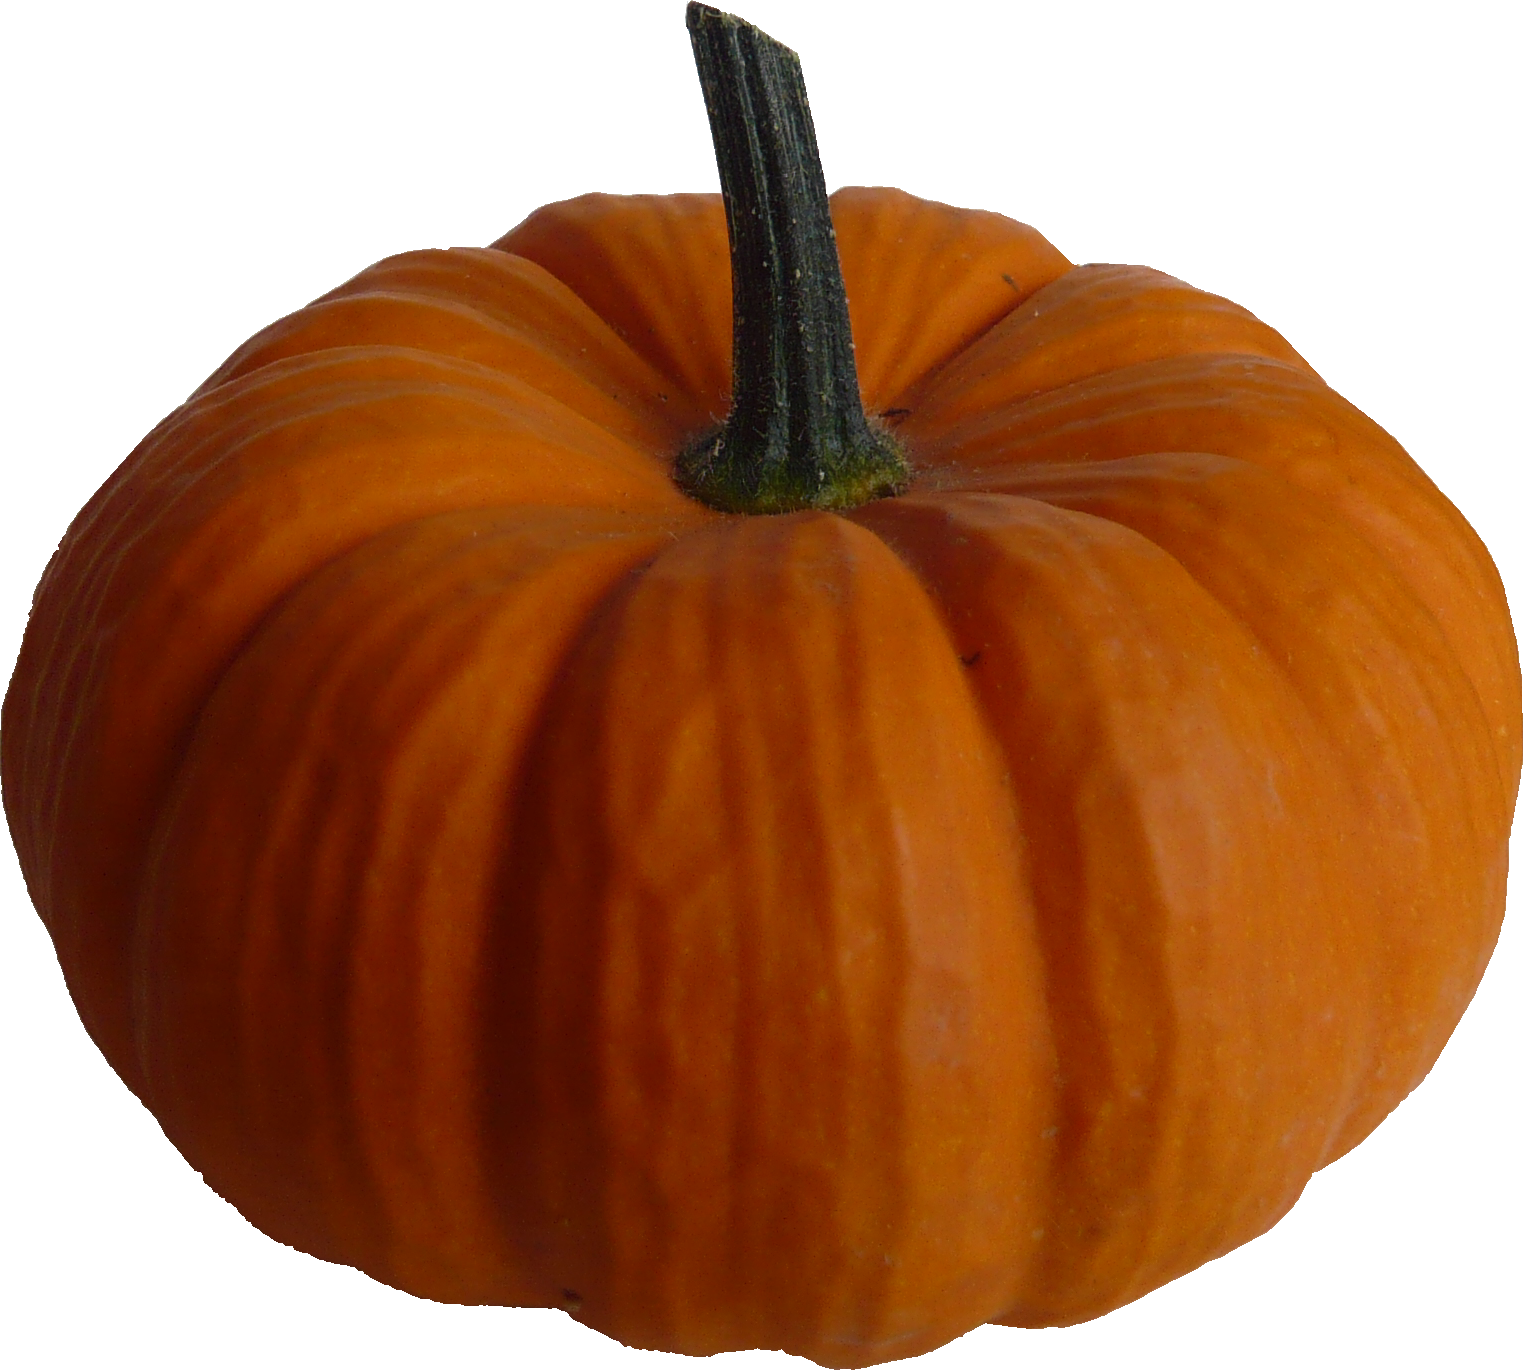 37 free pumpkin pictures free cliparts that you can download to you ...